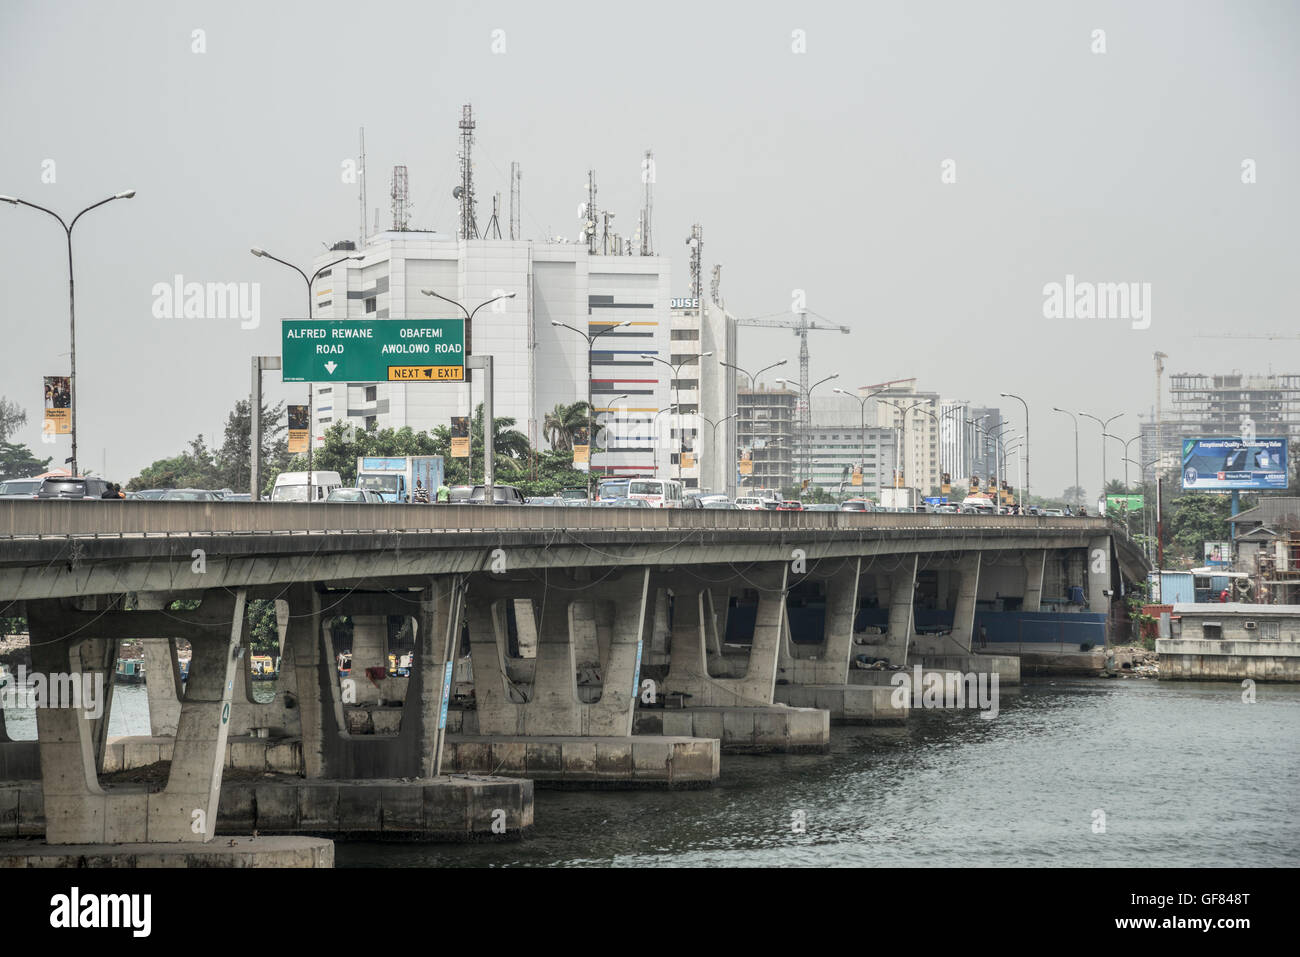 Falomo Bridge between Victoria Island and Lagos Island, Lagos, Nigeria, West Africa. - Stock Image